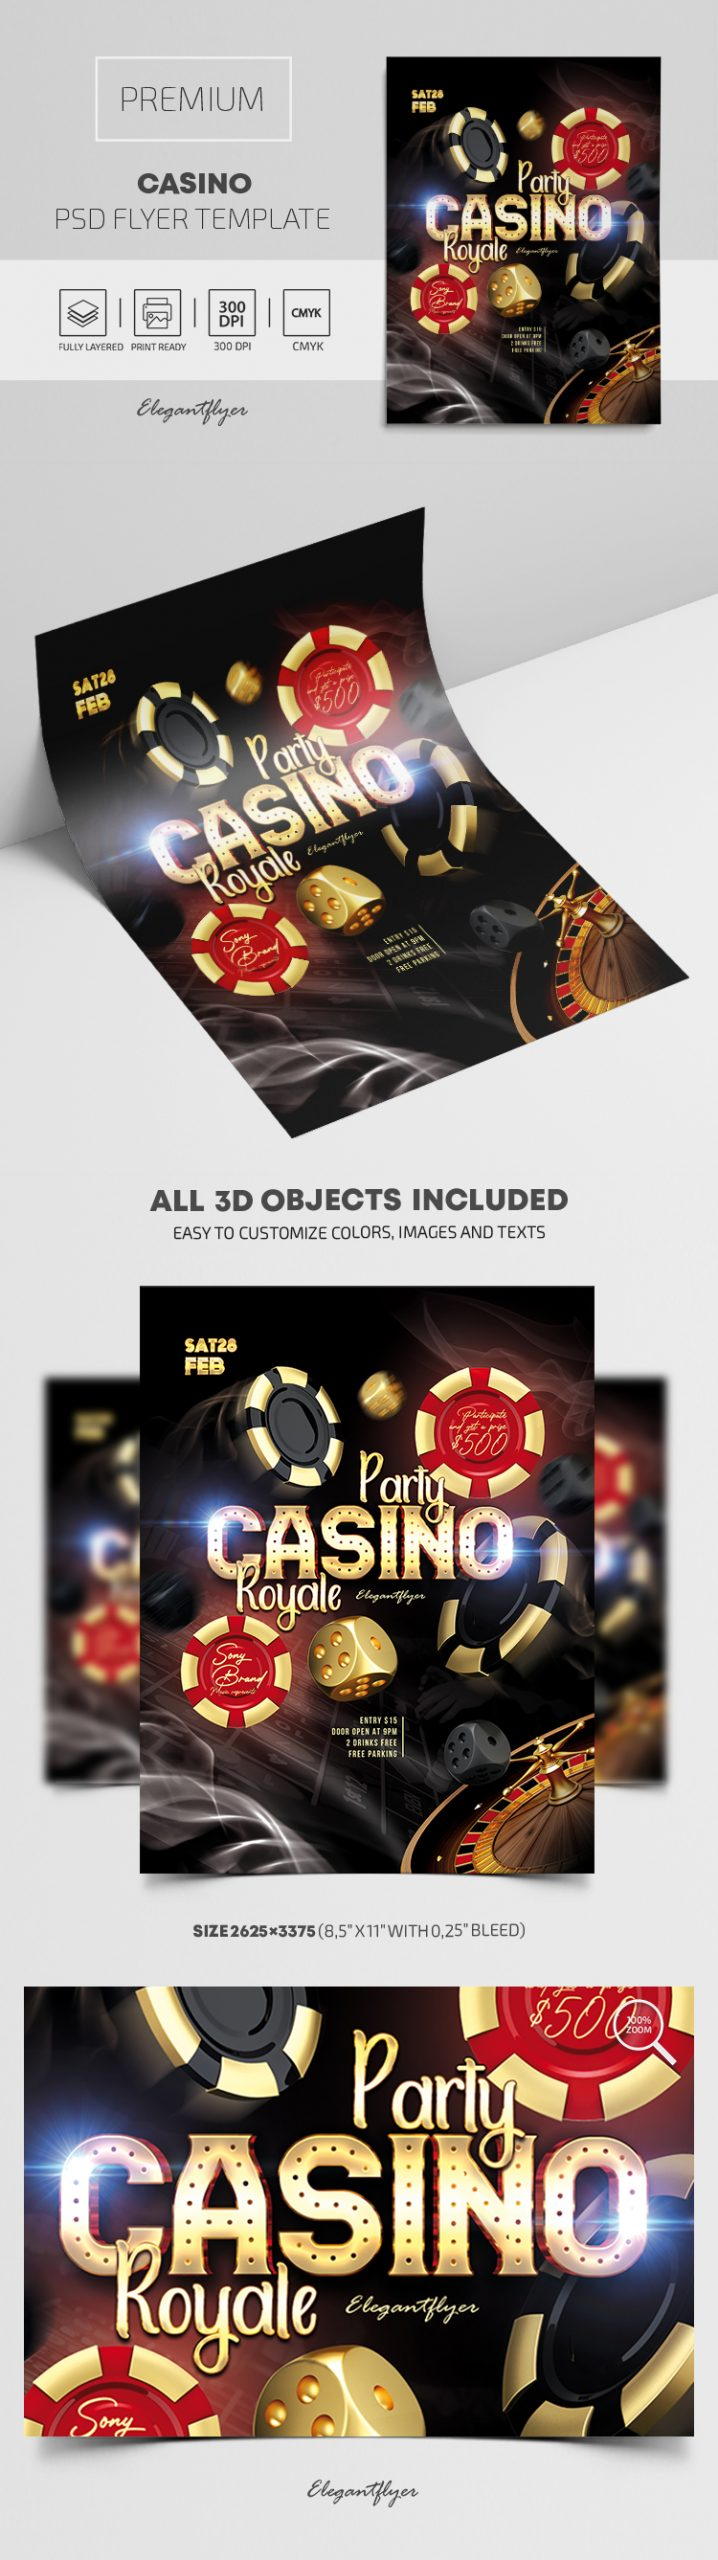 Casino – Premium PSD Flyer Template